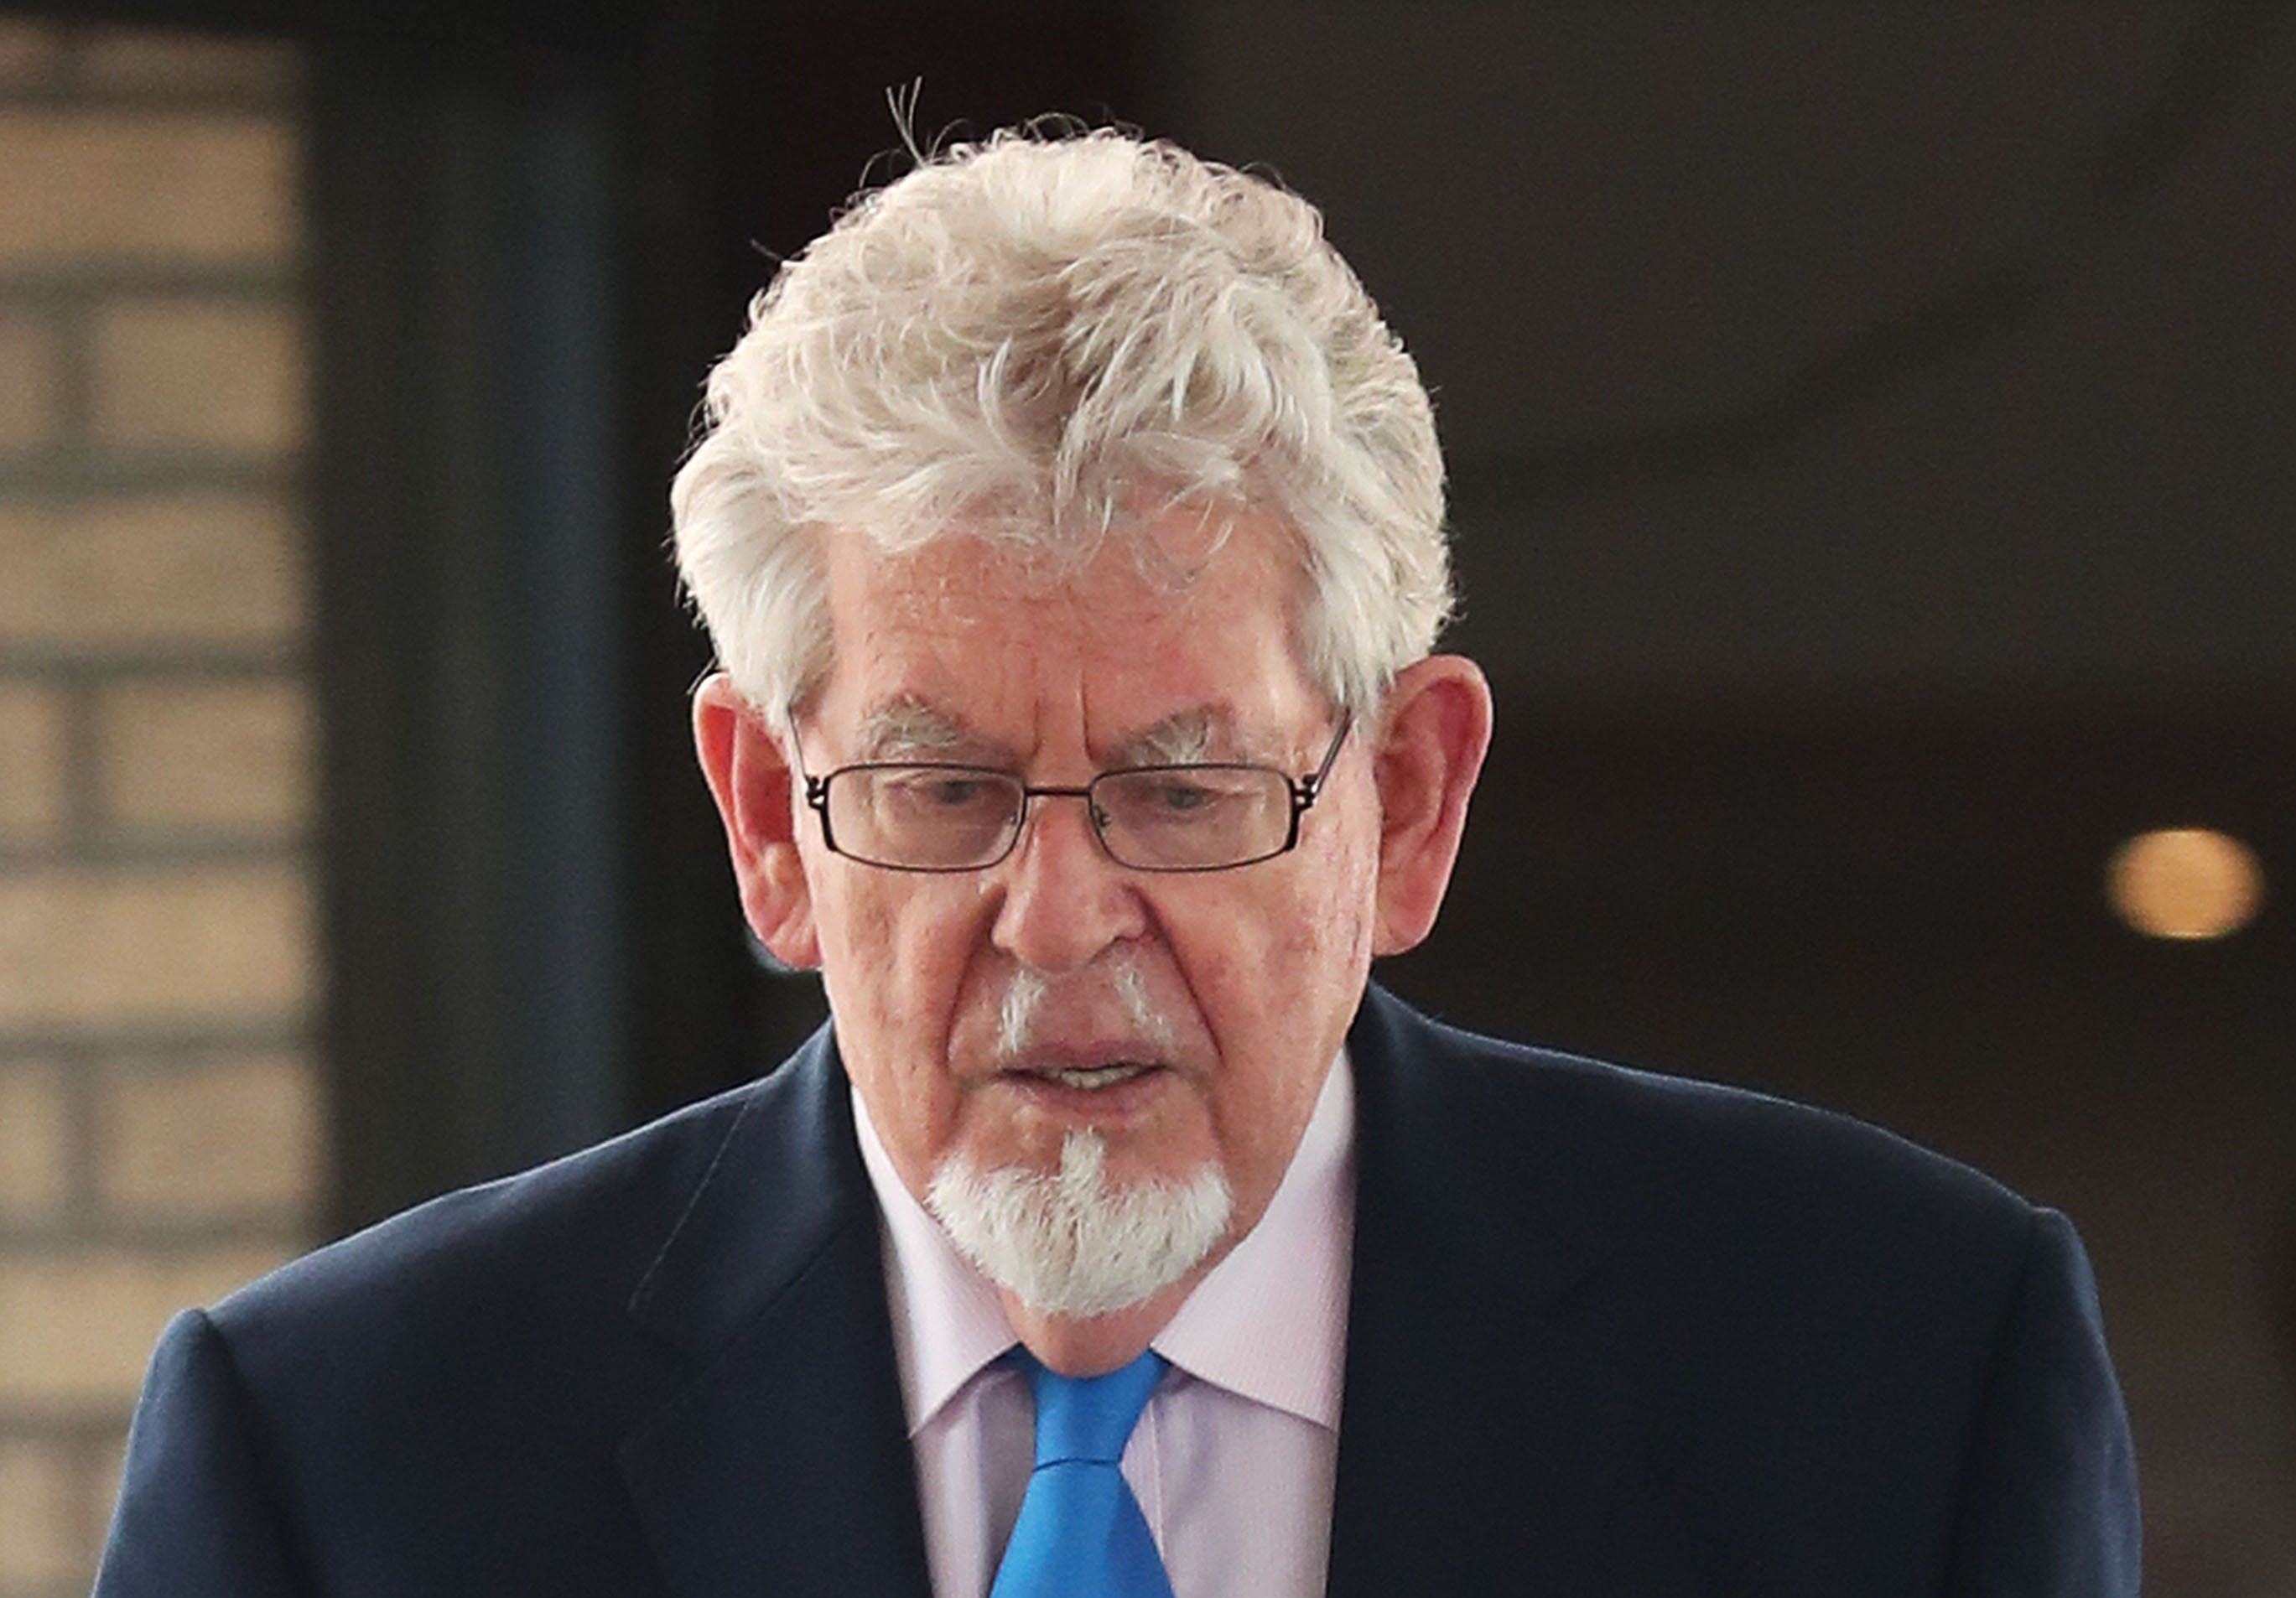 Child abuser Rolf Harris being investigated for 'walking onto primary school grounds'